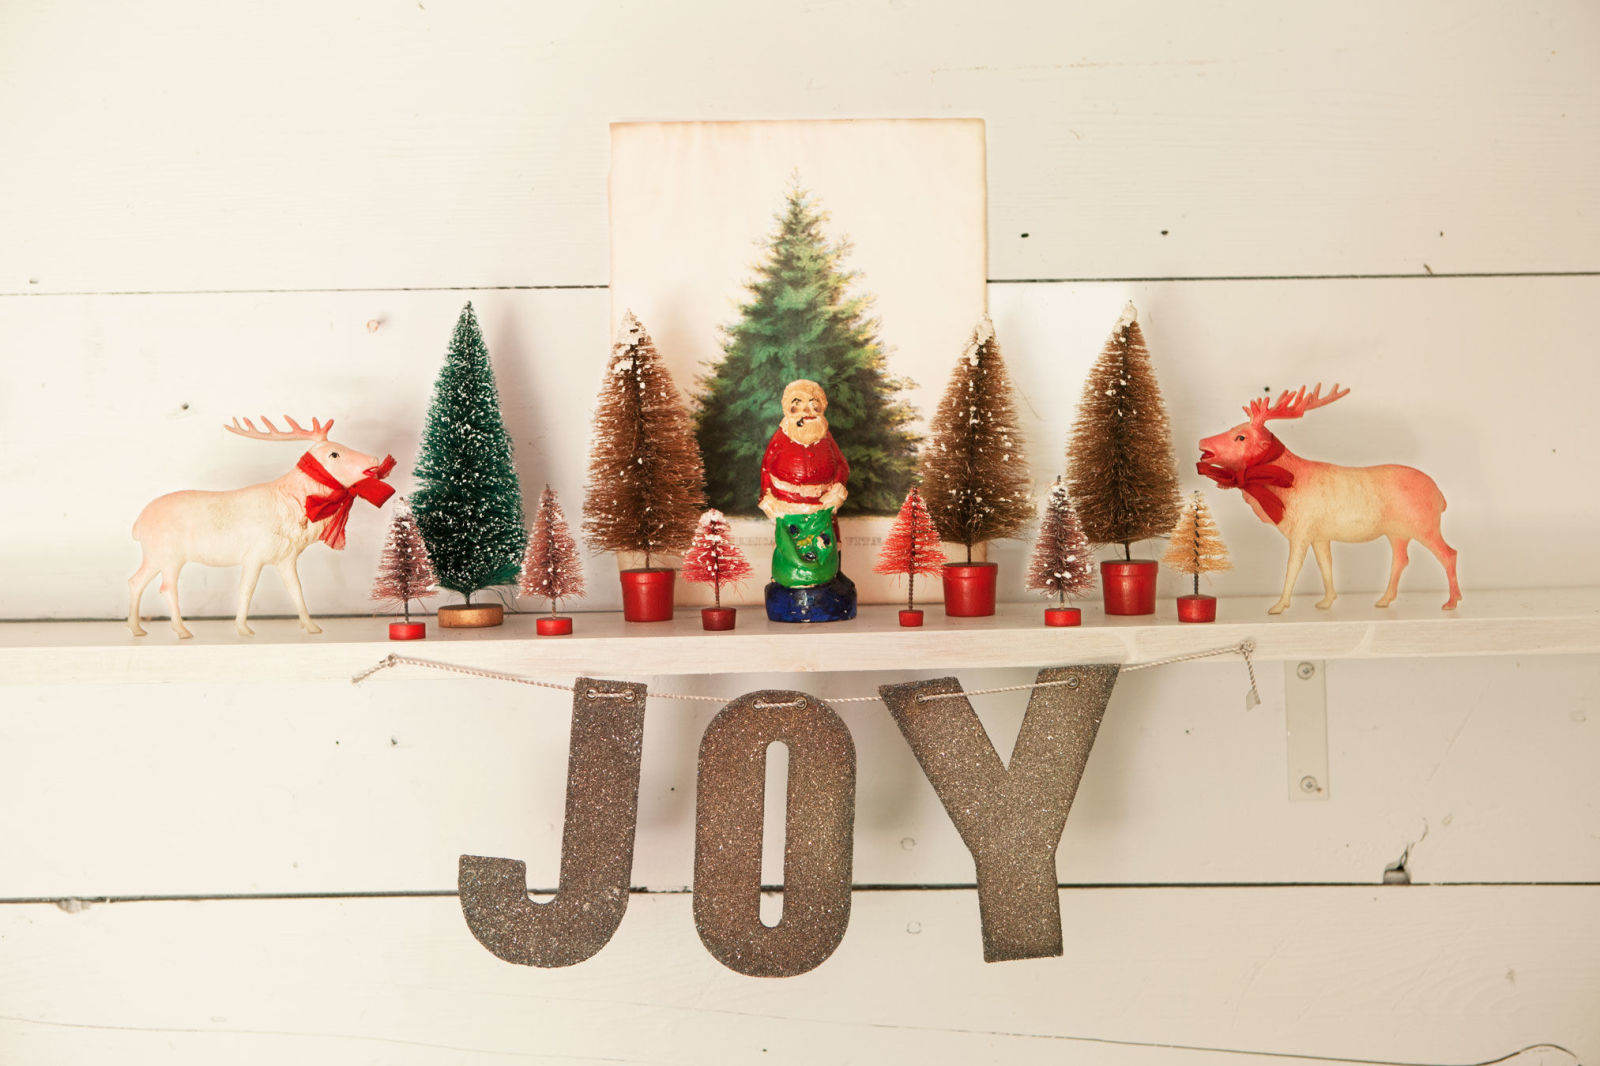 Joanna Gaines Store - Holiday Gifts From Magnolia Market